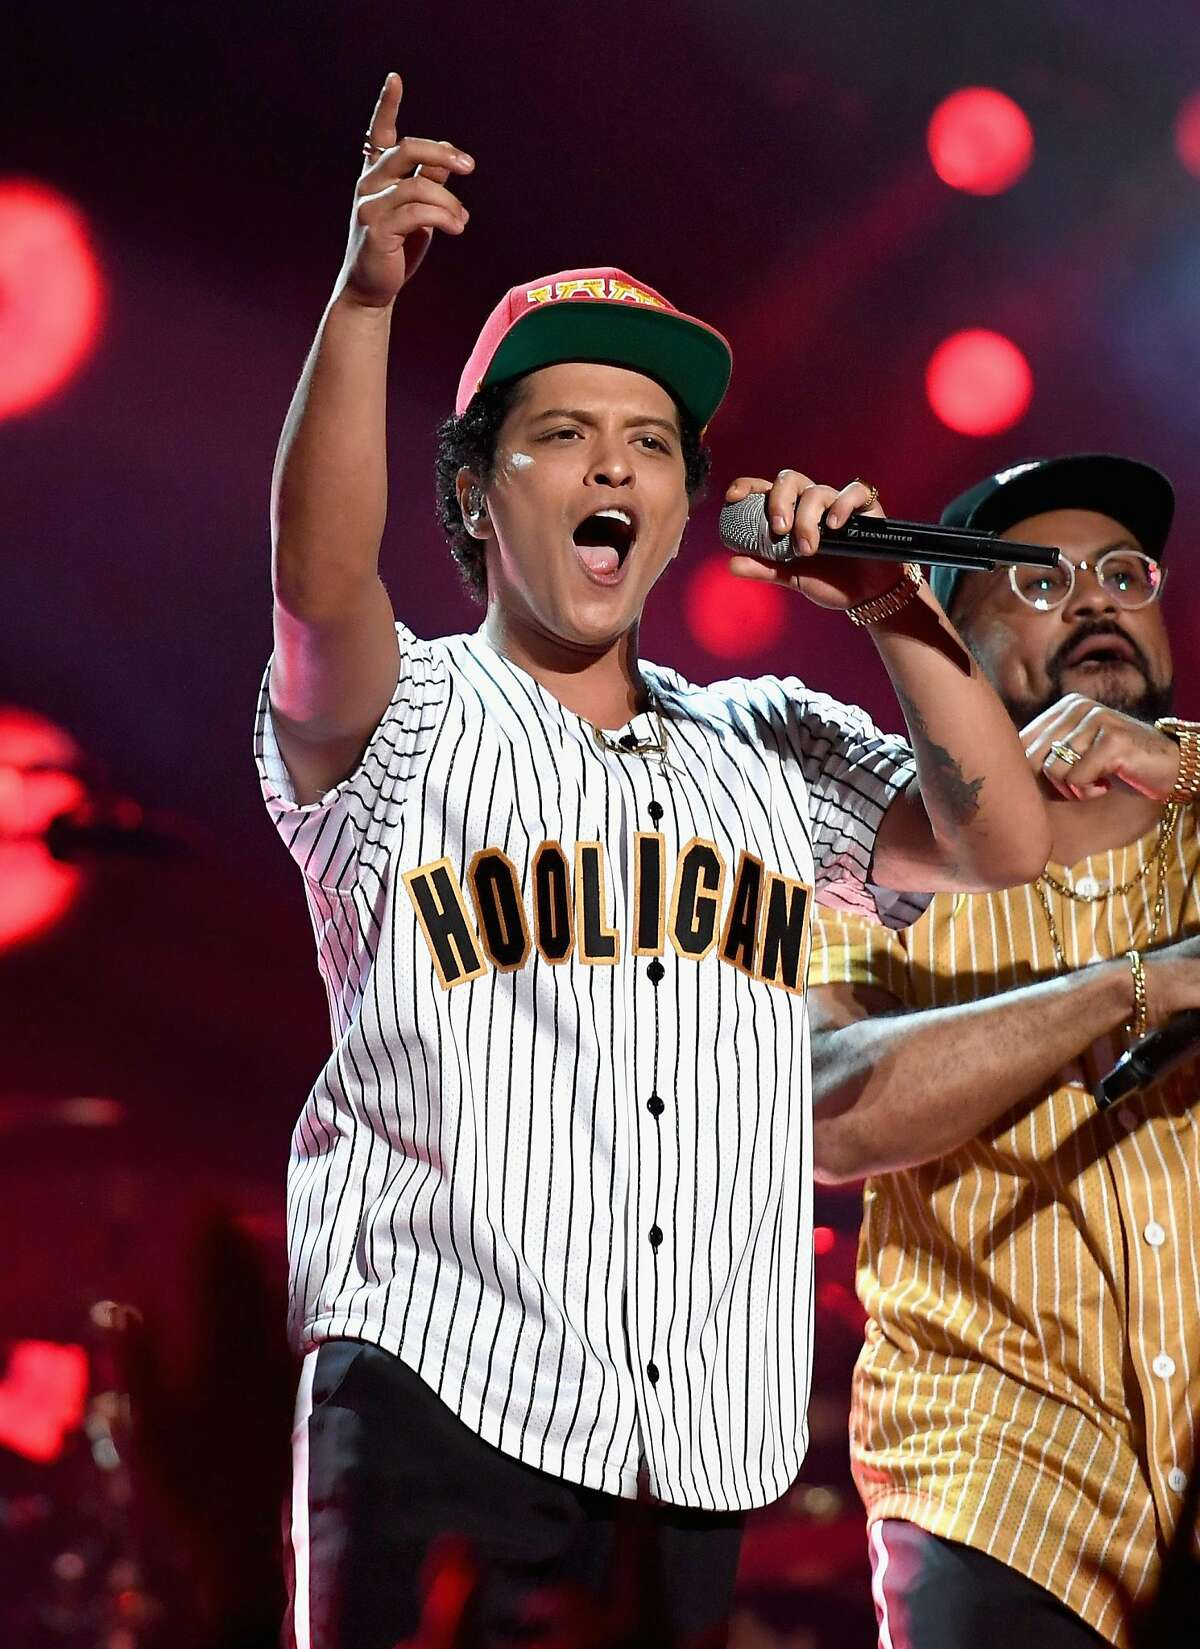 LOS ANGELES, CA - JUNE 25: Bruno Mars performs onstage at 2017 BET Awards at Microsoft Theater on June 25, 2017 in Los Angeles, California. (Photo by Paras Griffin/Getty Images for BET)